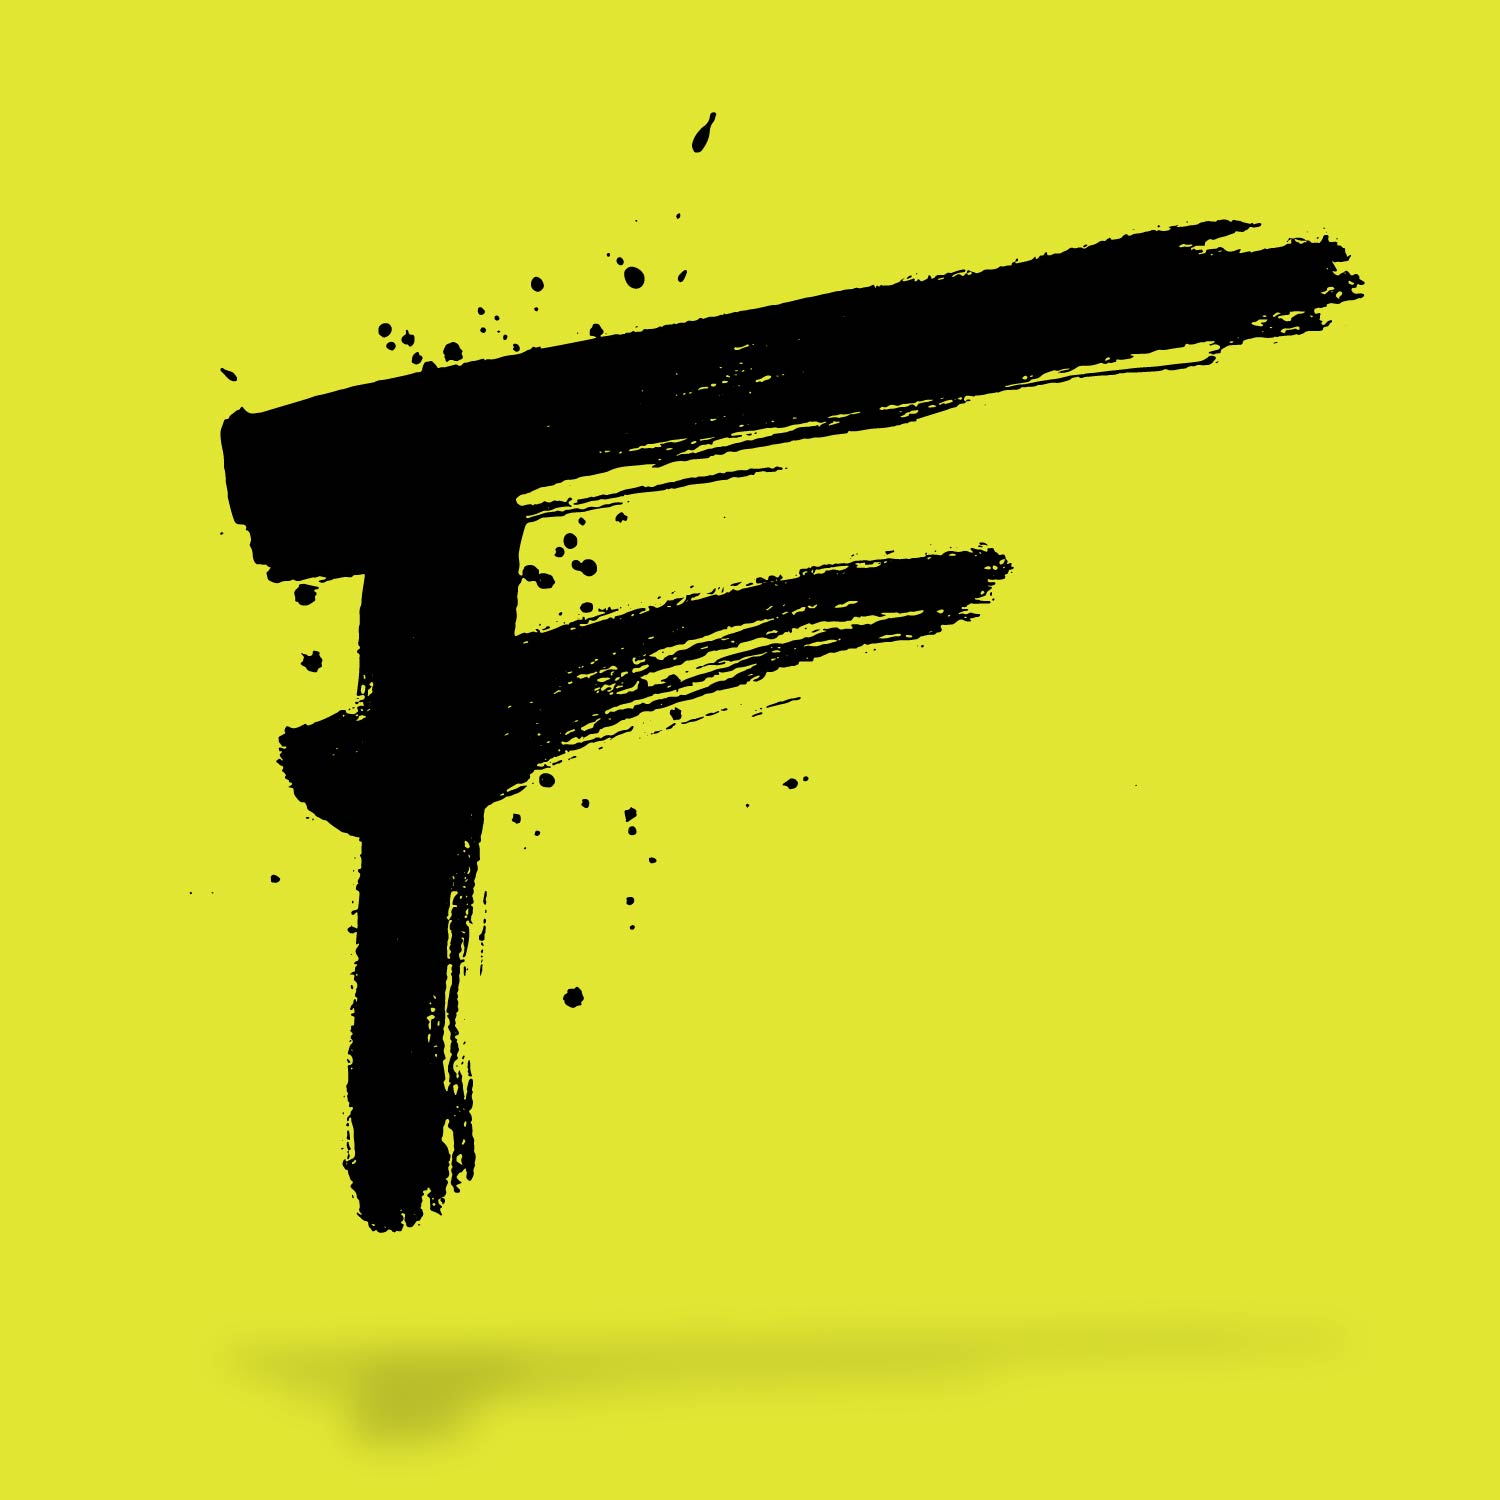 wild splatter ink brushed letter F floating on a bright yellow green background